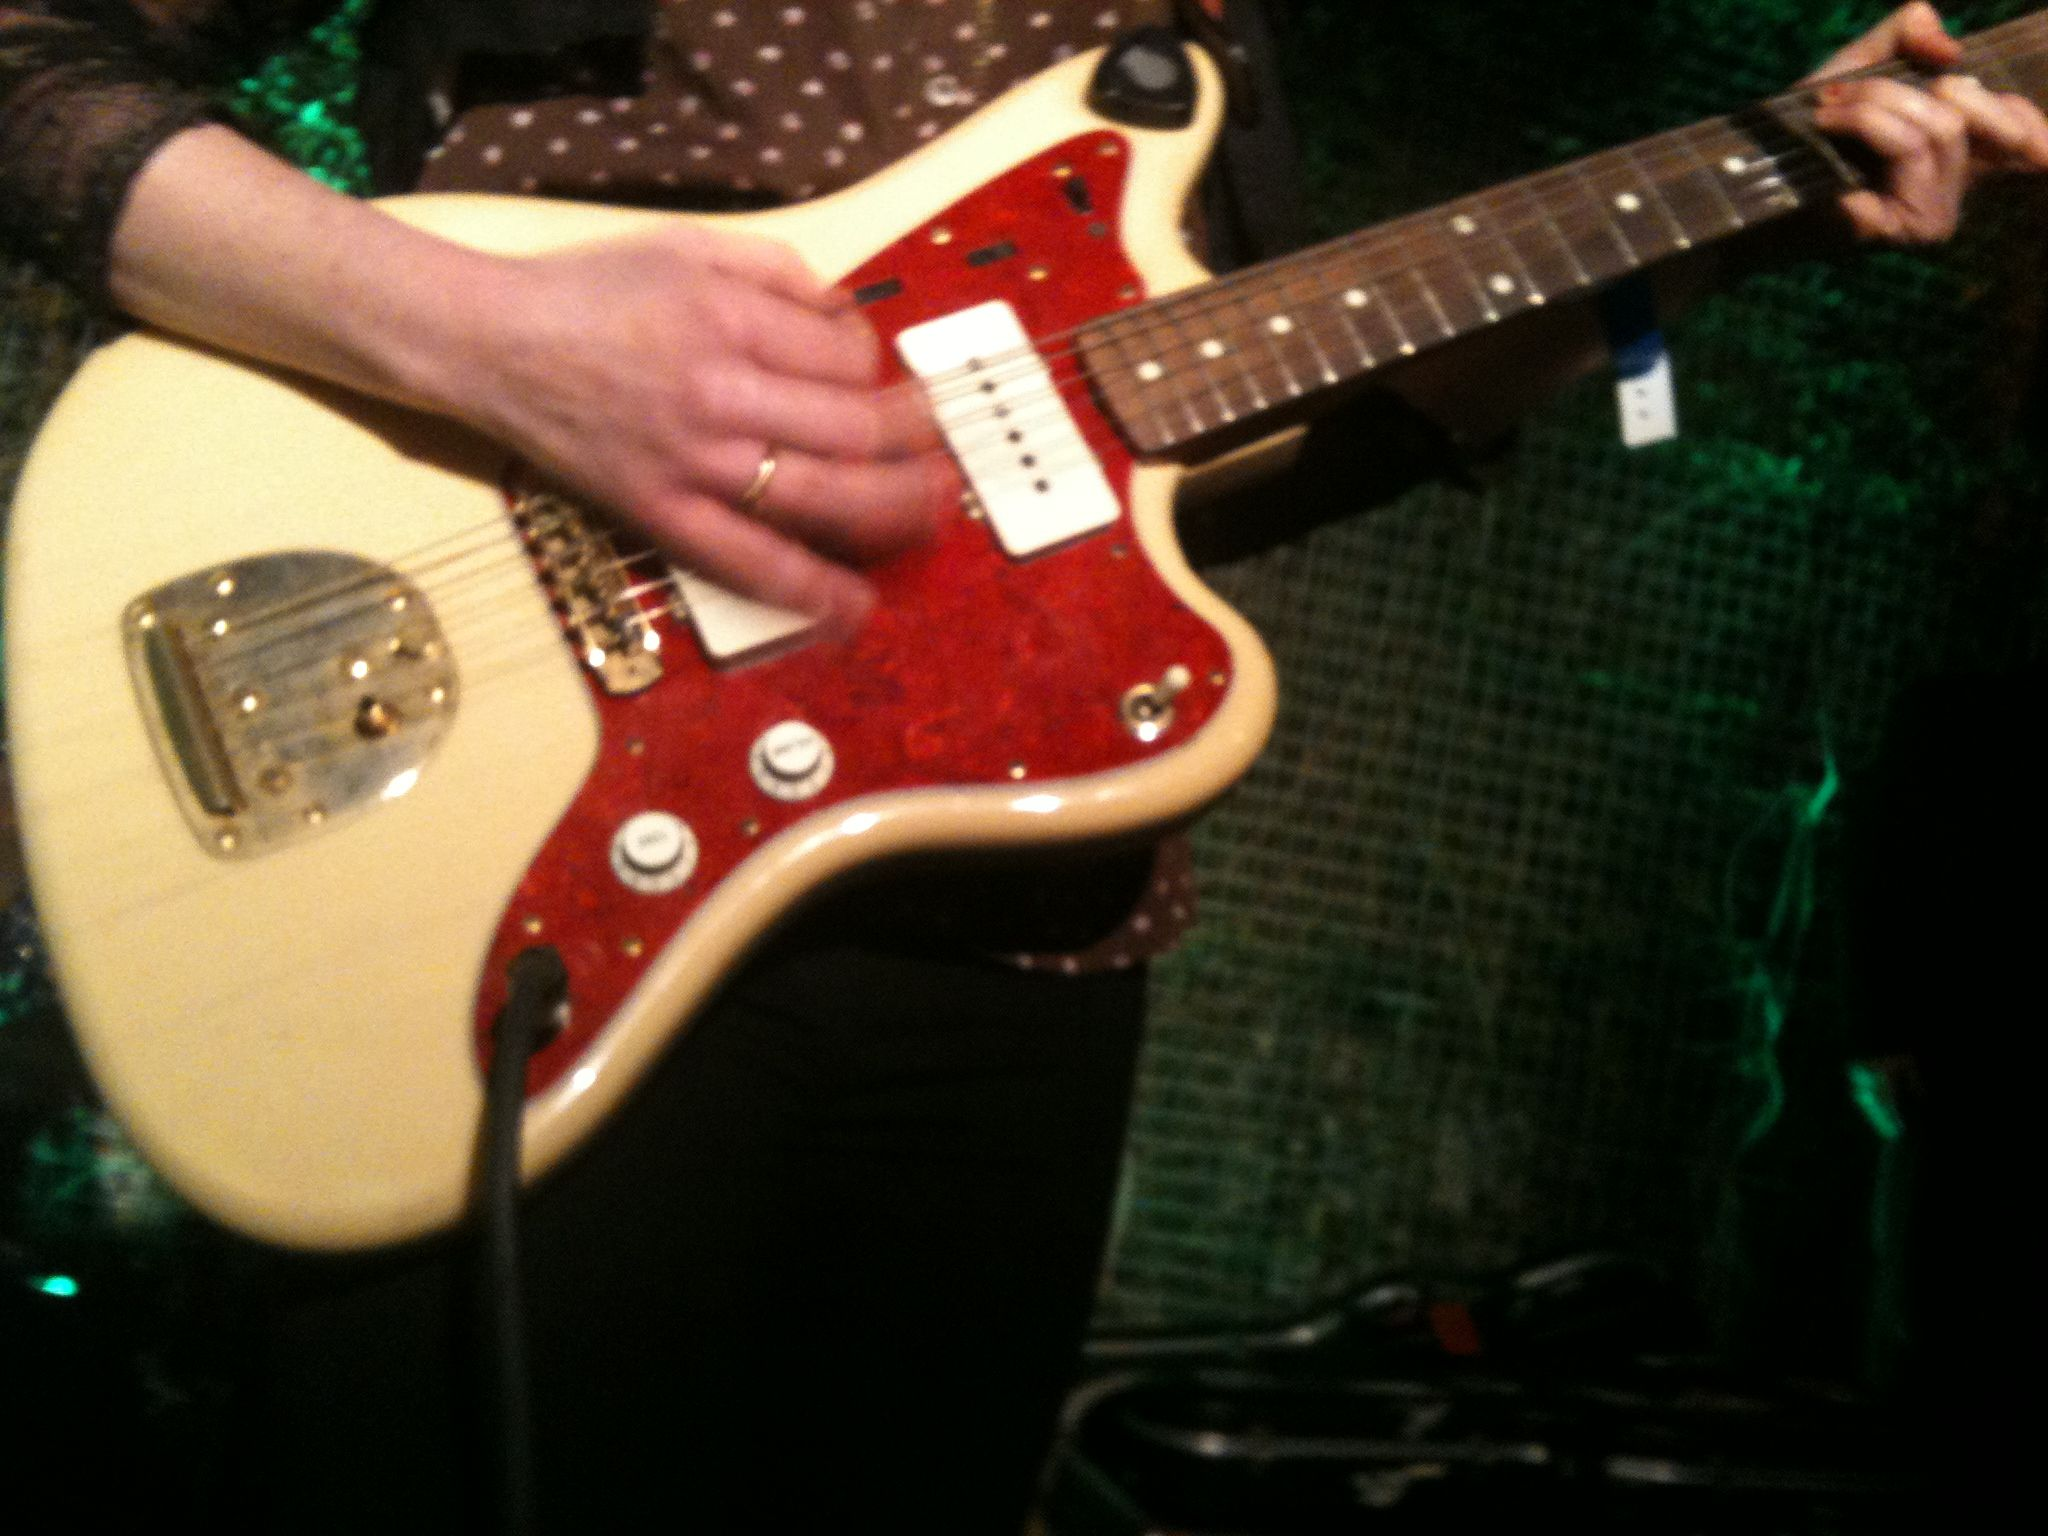 Electric guitar action!